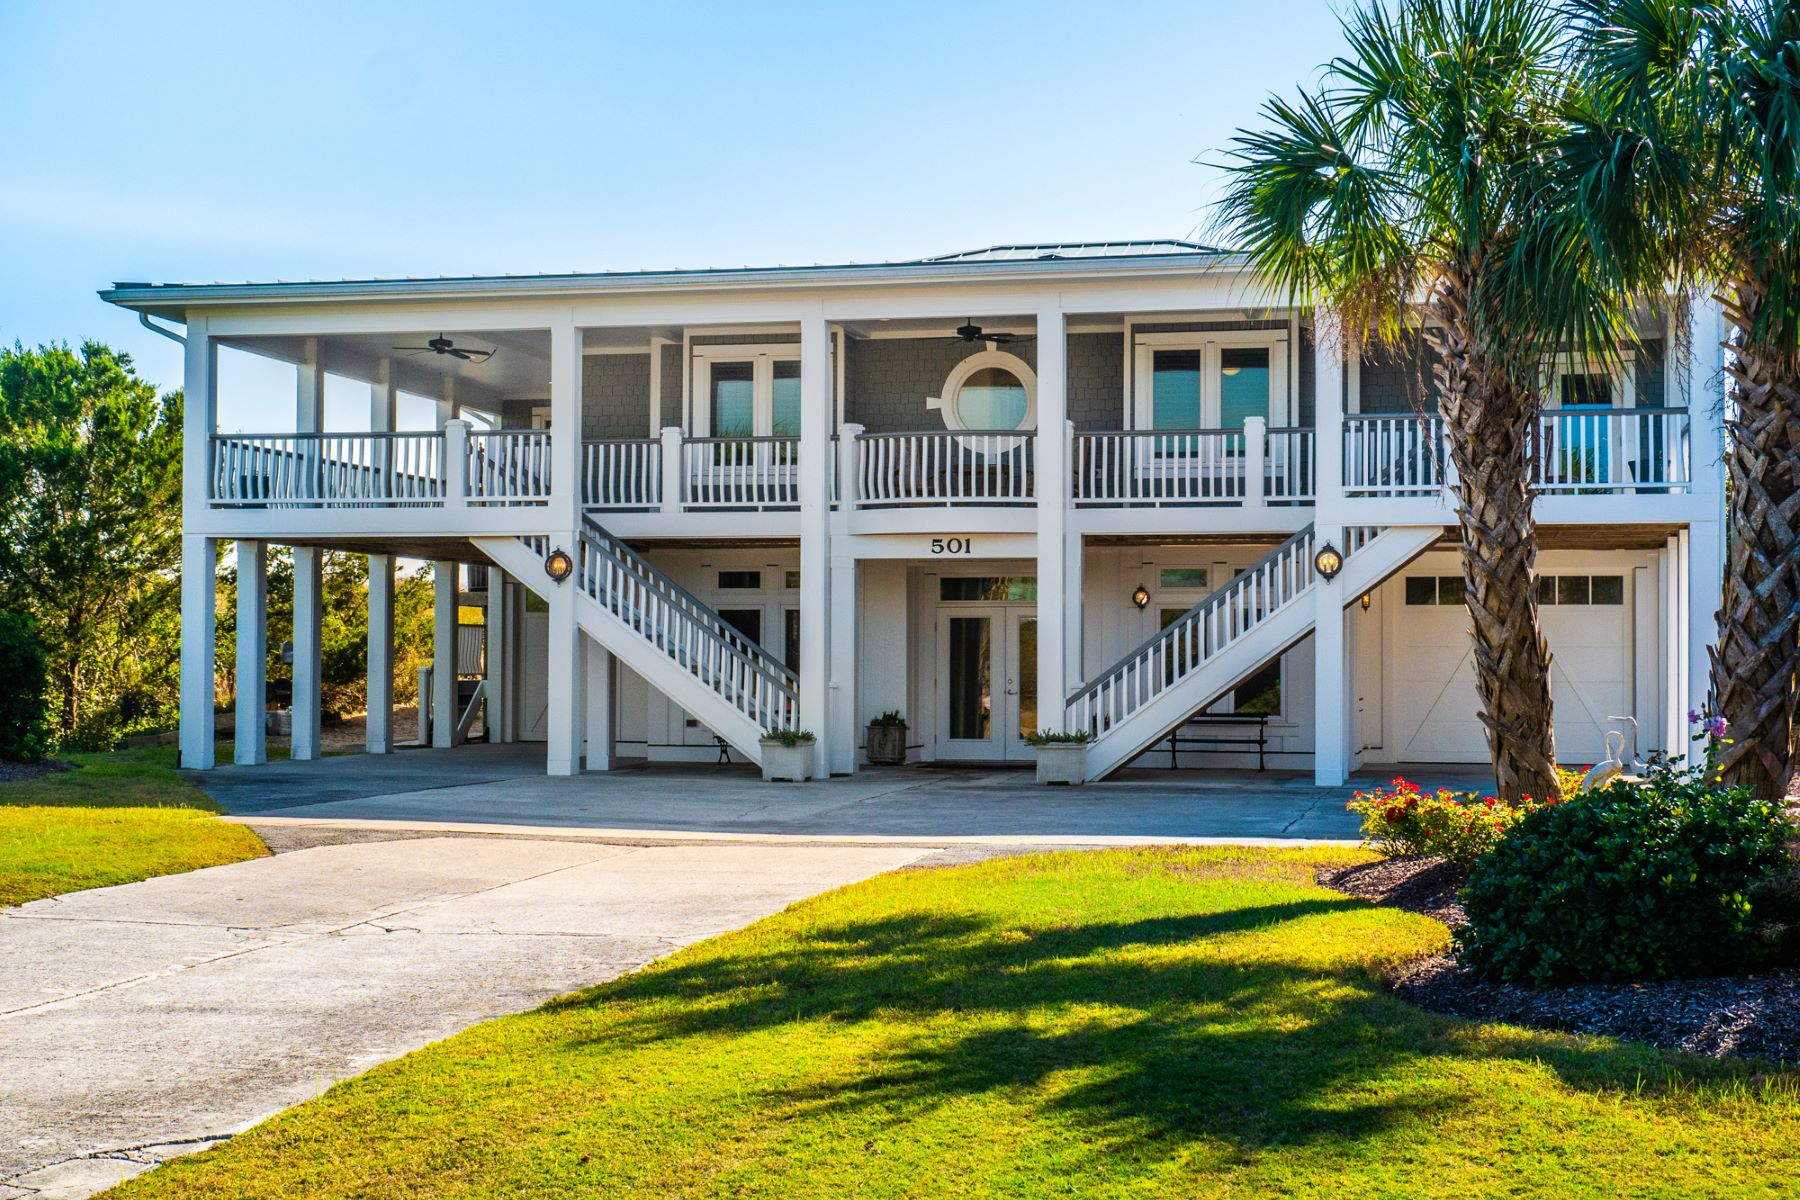 Single Family Homes for Active at Luxury Oceanfront on South Anderson 501 S Anderson Blvd Topsail Beach, North Carolina 28445 United States